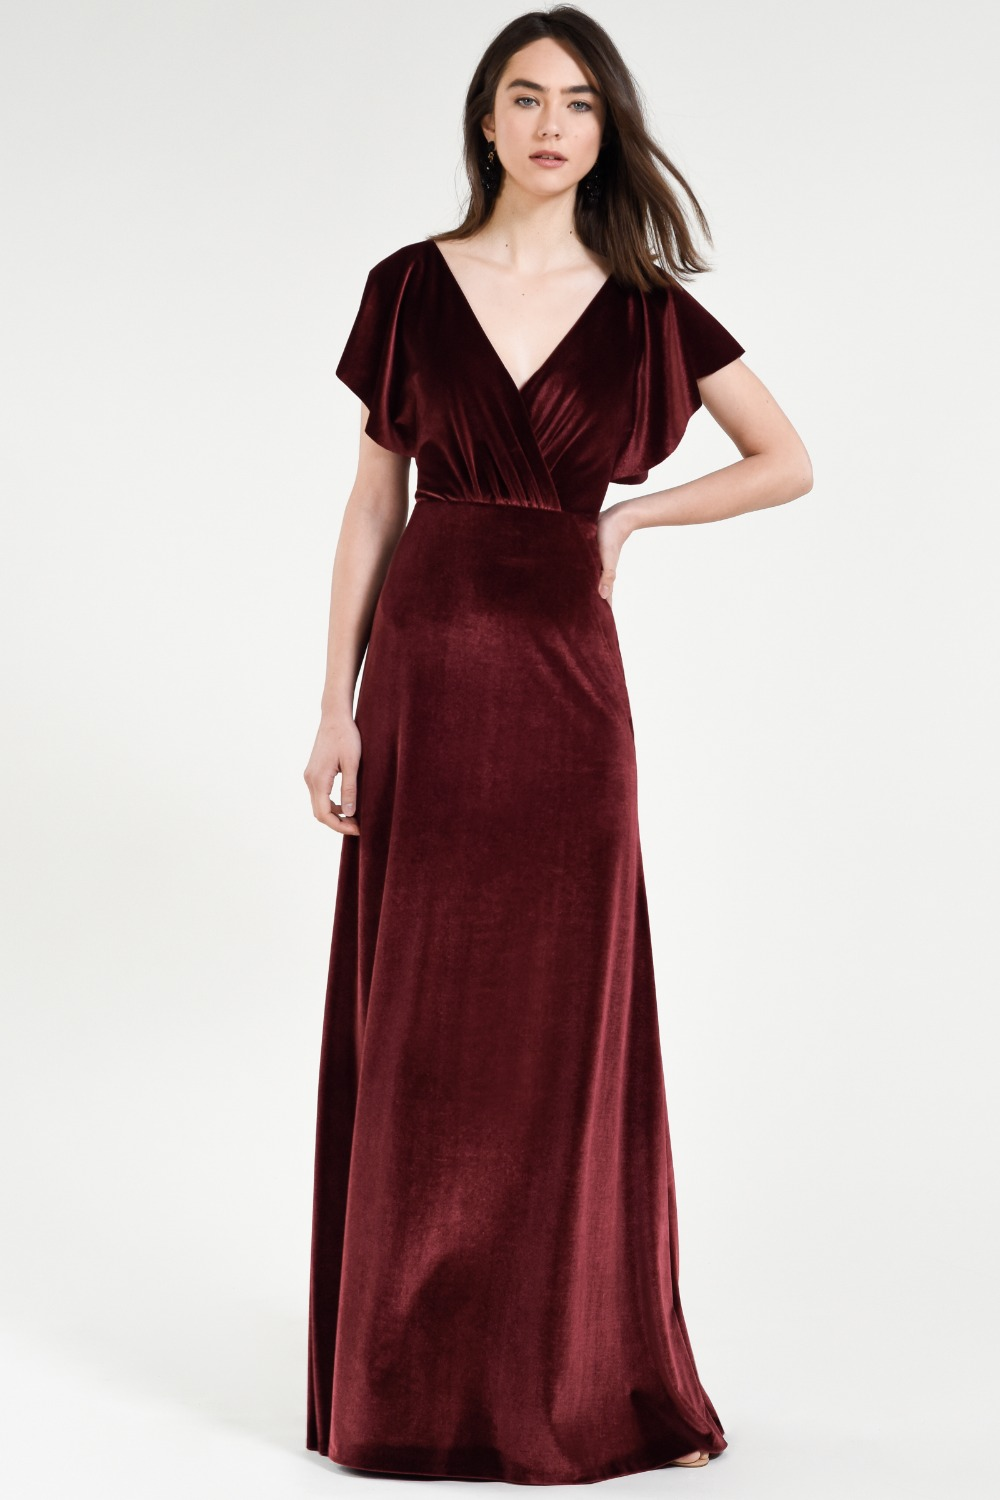 427d8f9ed24a Trending - Fall 2018 Jenny Yoo Collection Bridesmaid